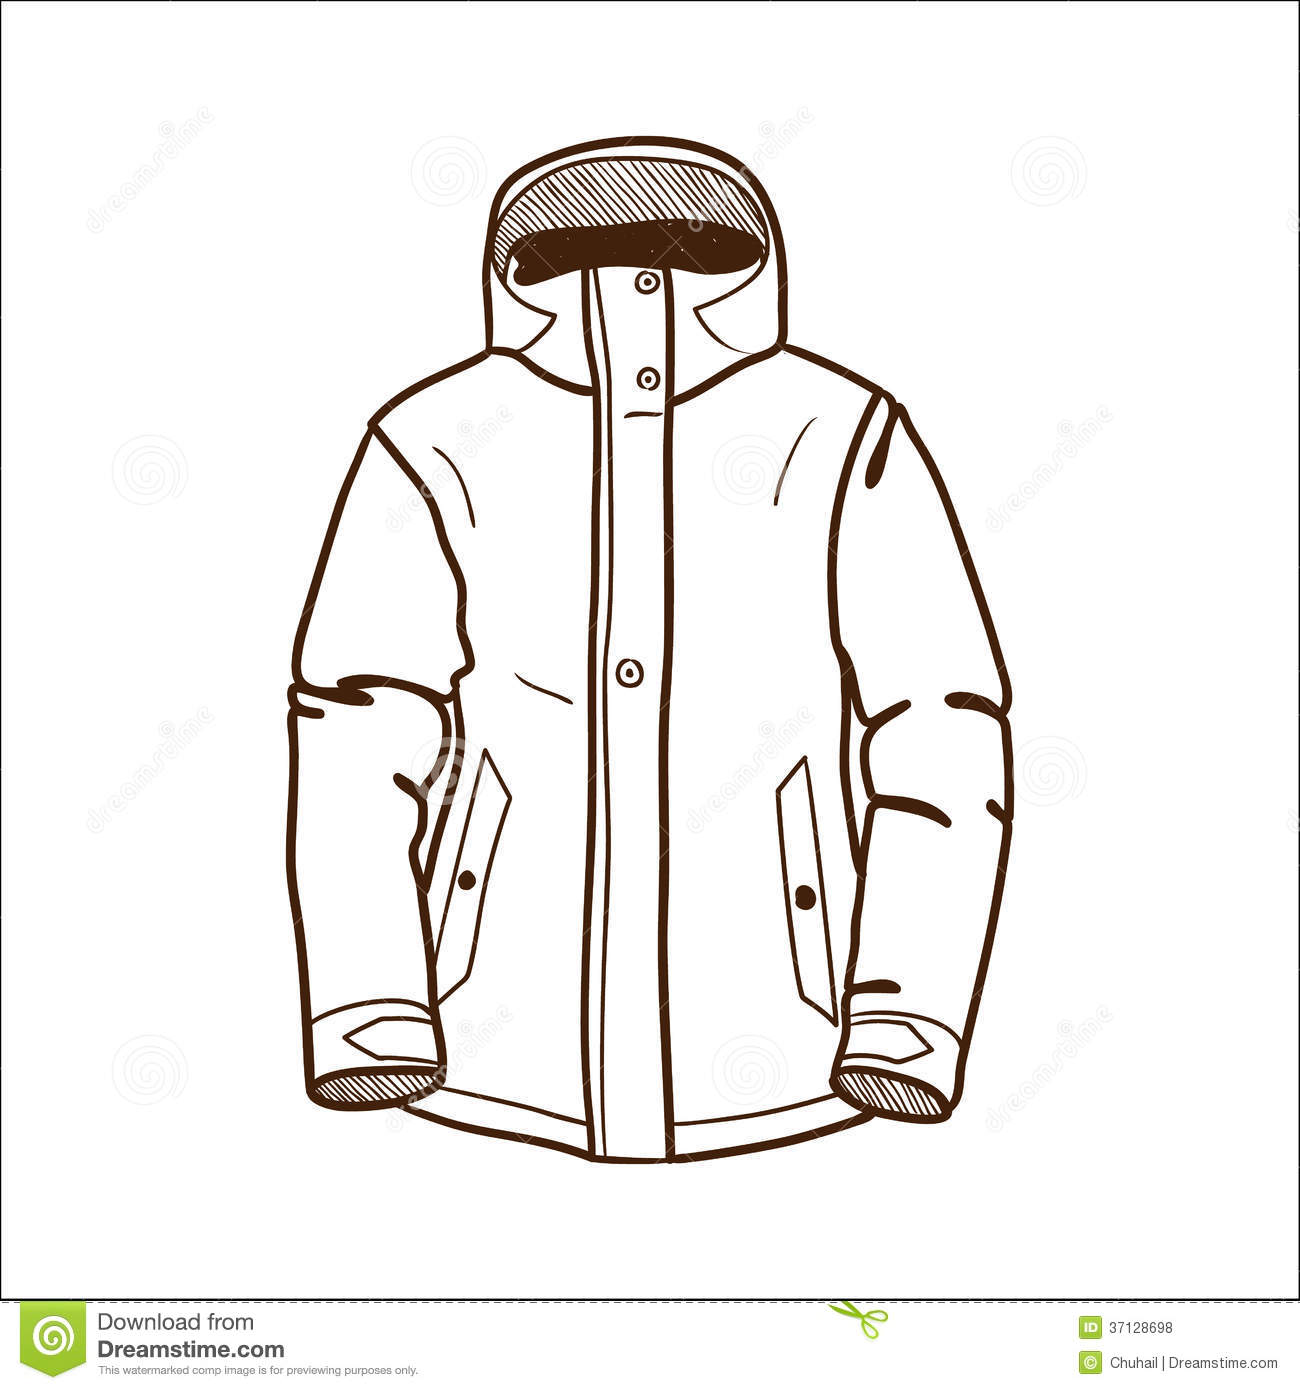 jacket clipart black and white - photo #23